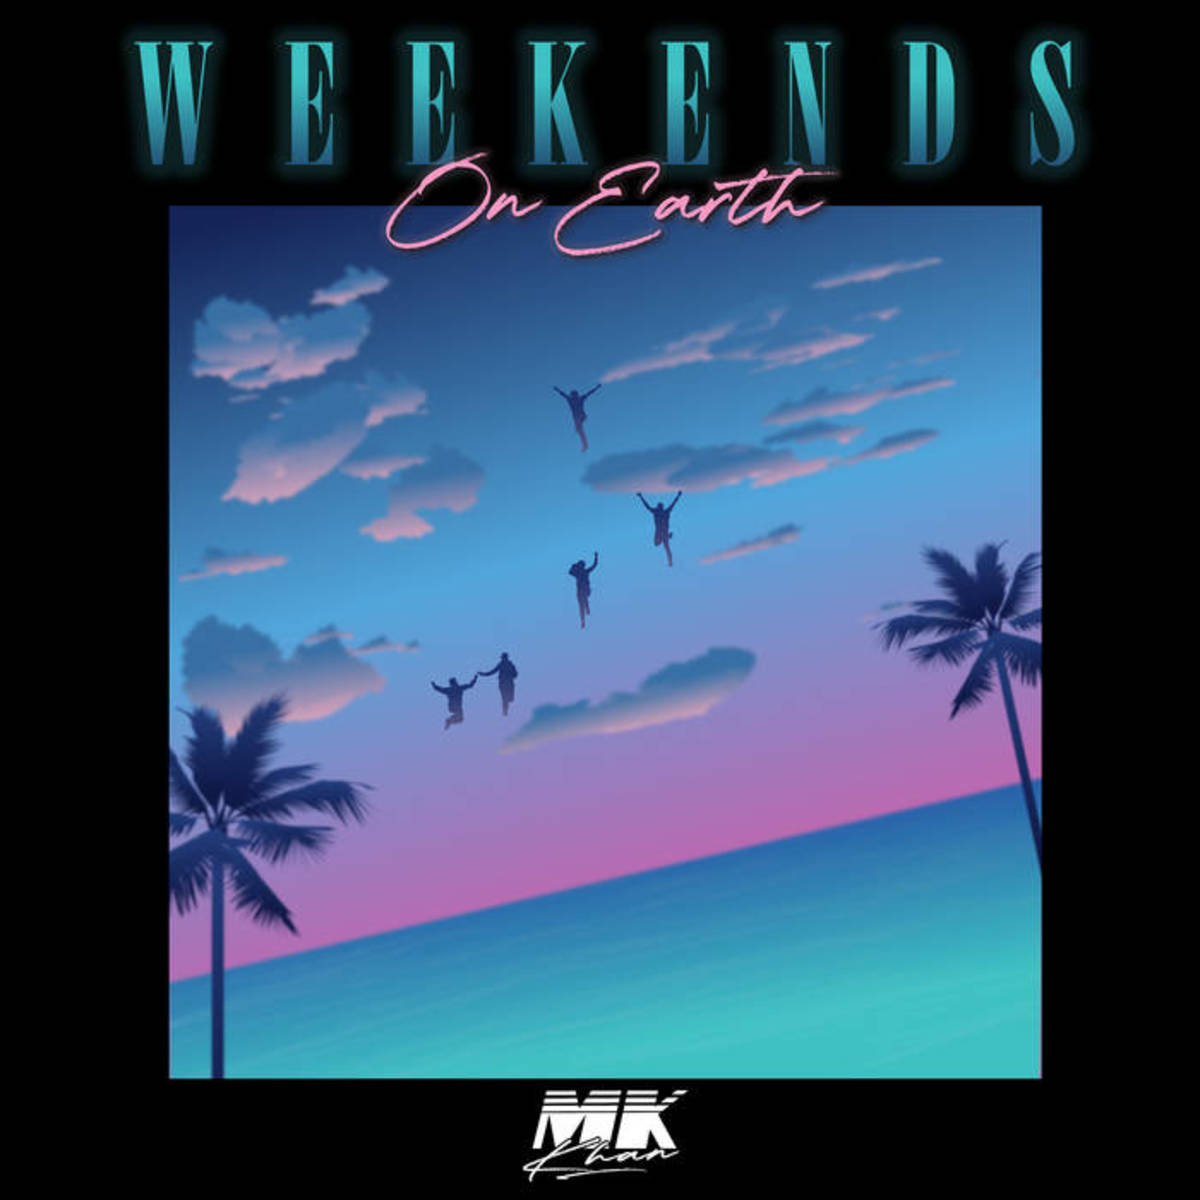 synth-album-review-weekends-on-earth-by-mk-khan